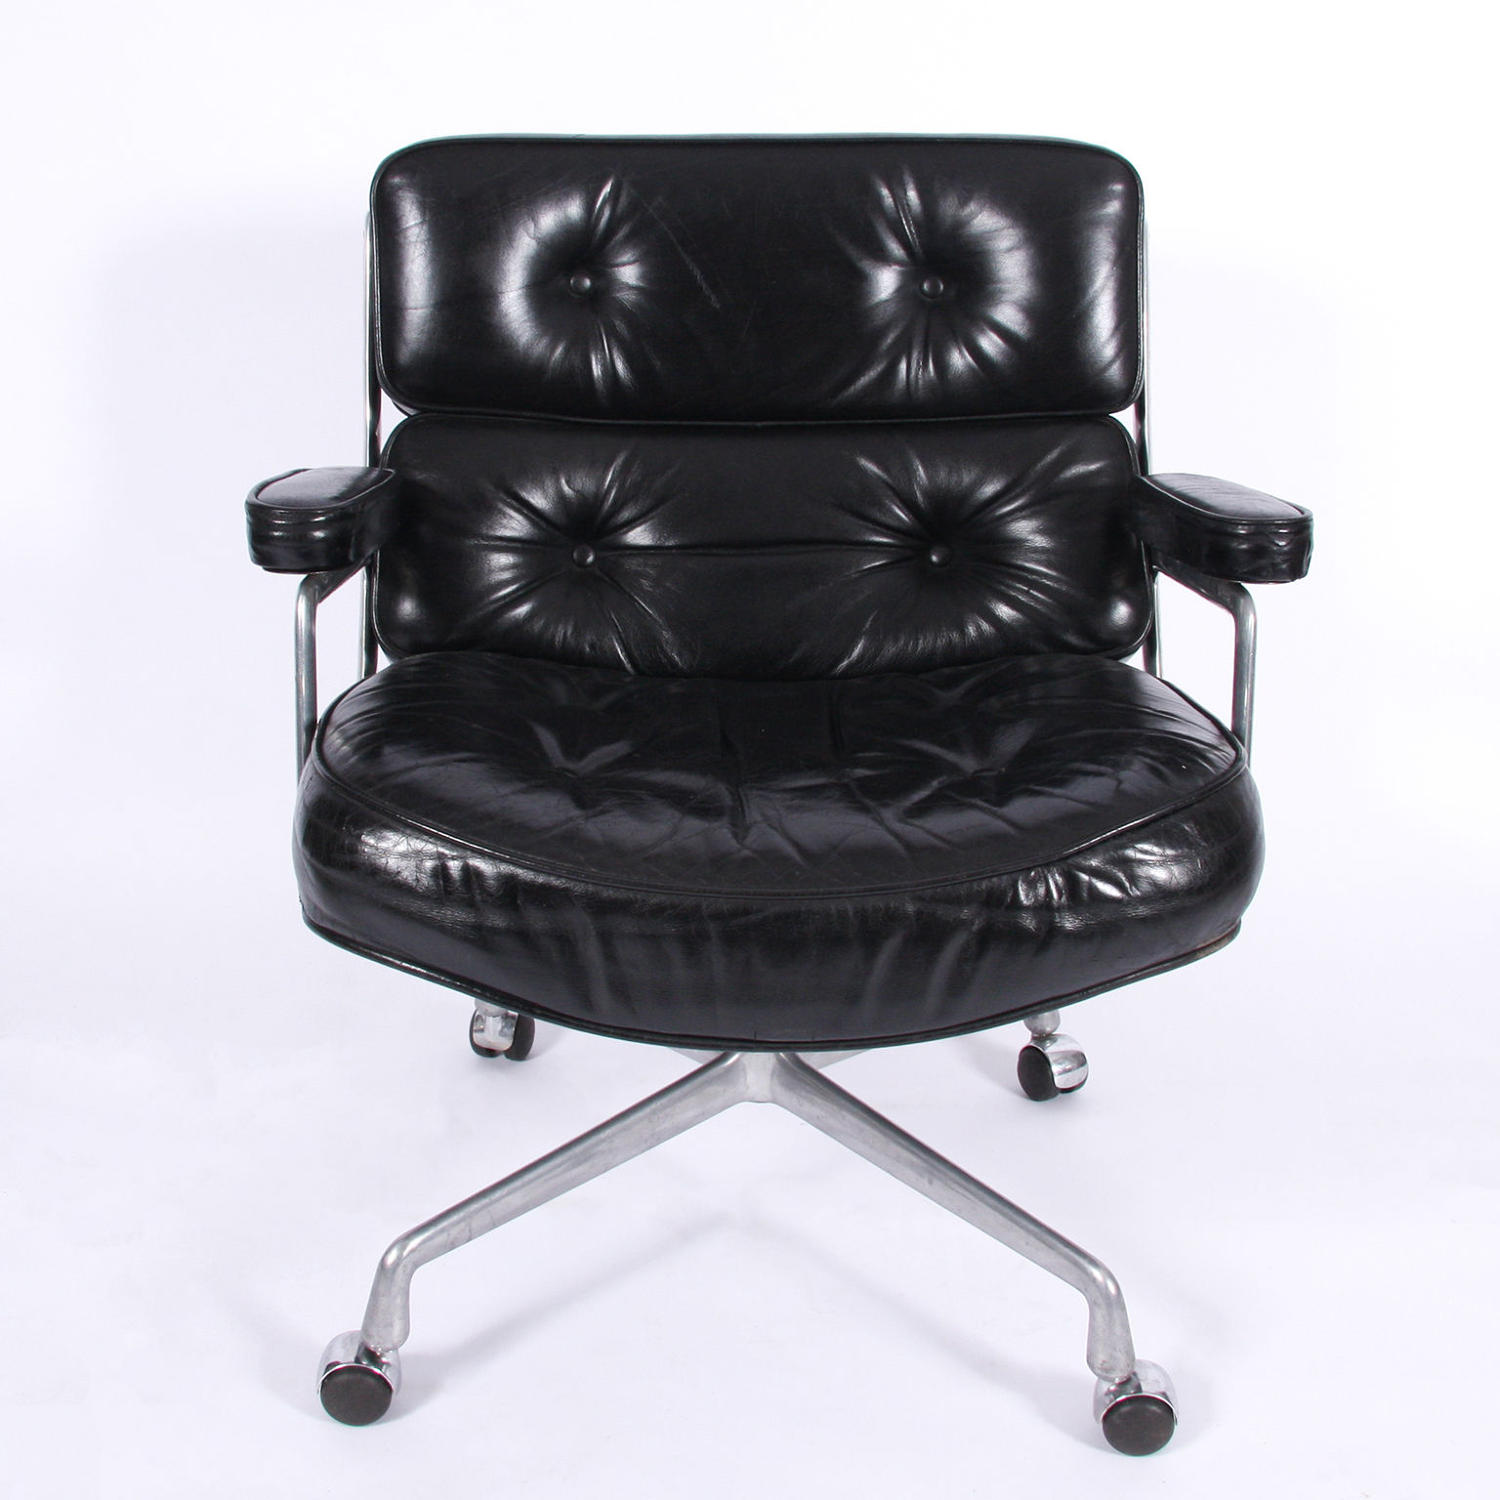 'Time-Life' Chair, Charles Eames for Herman Miller